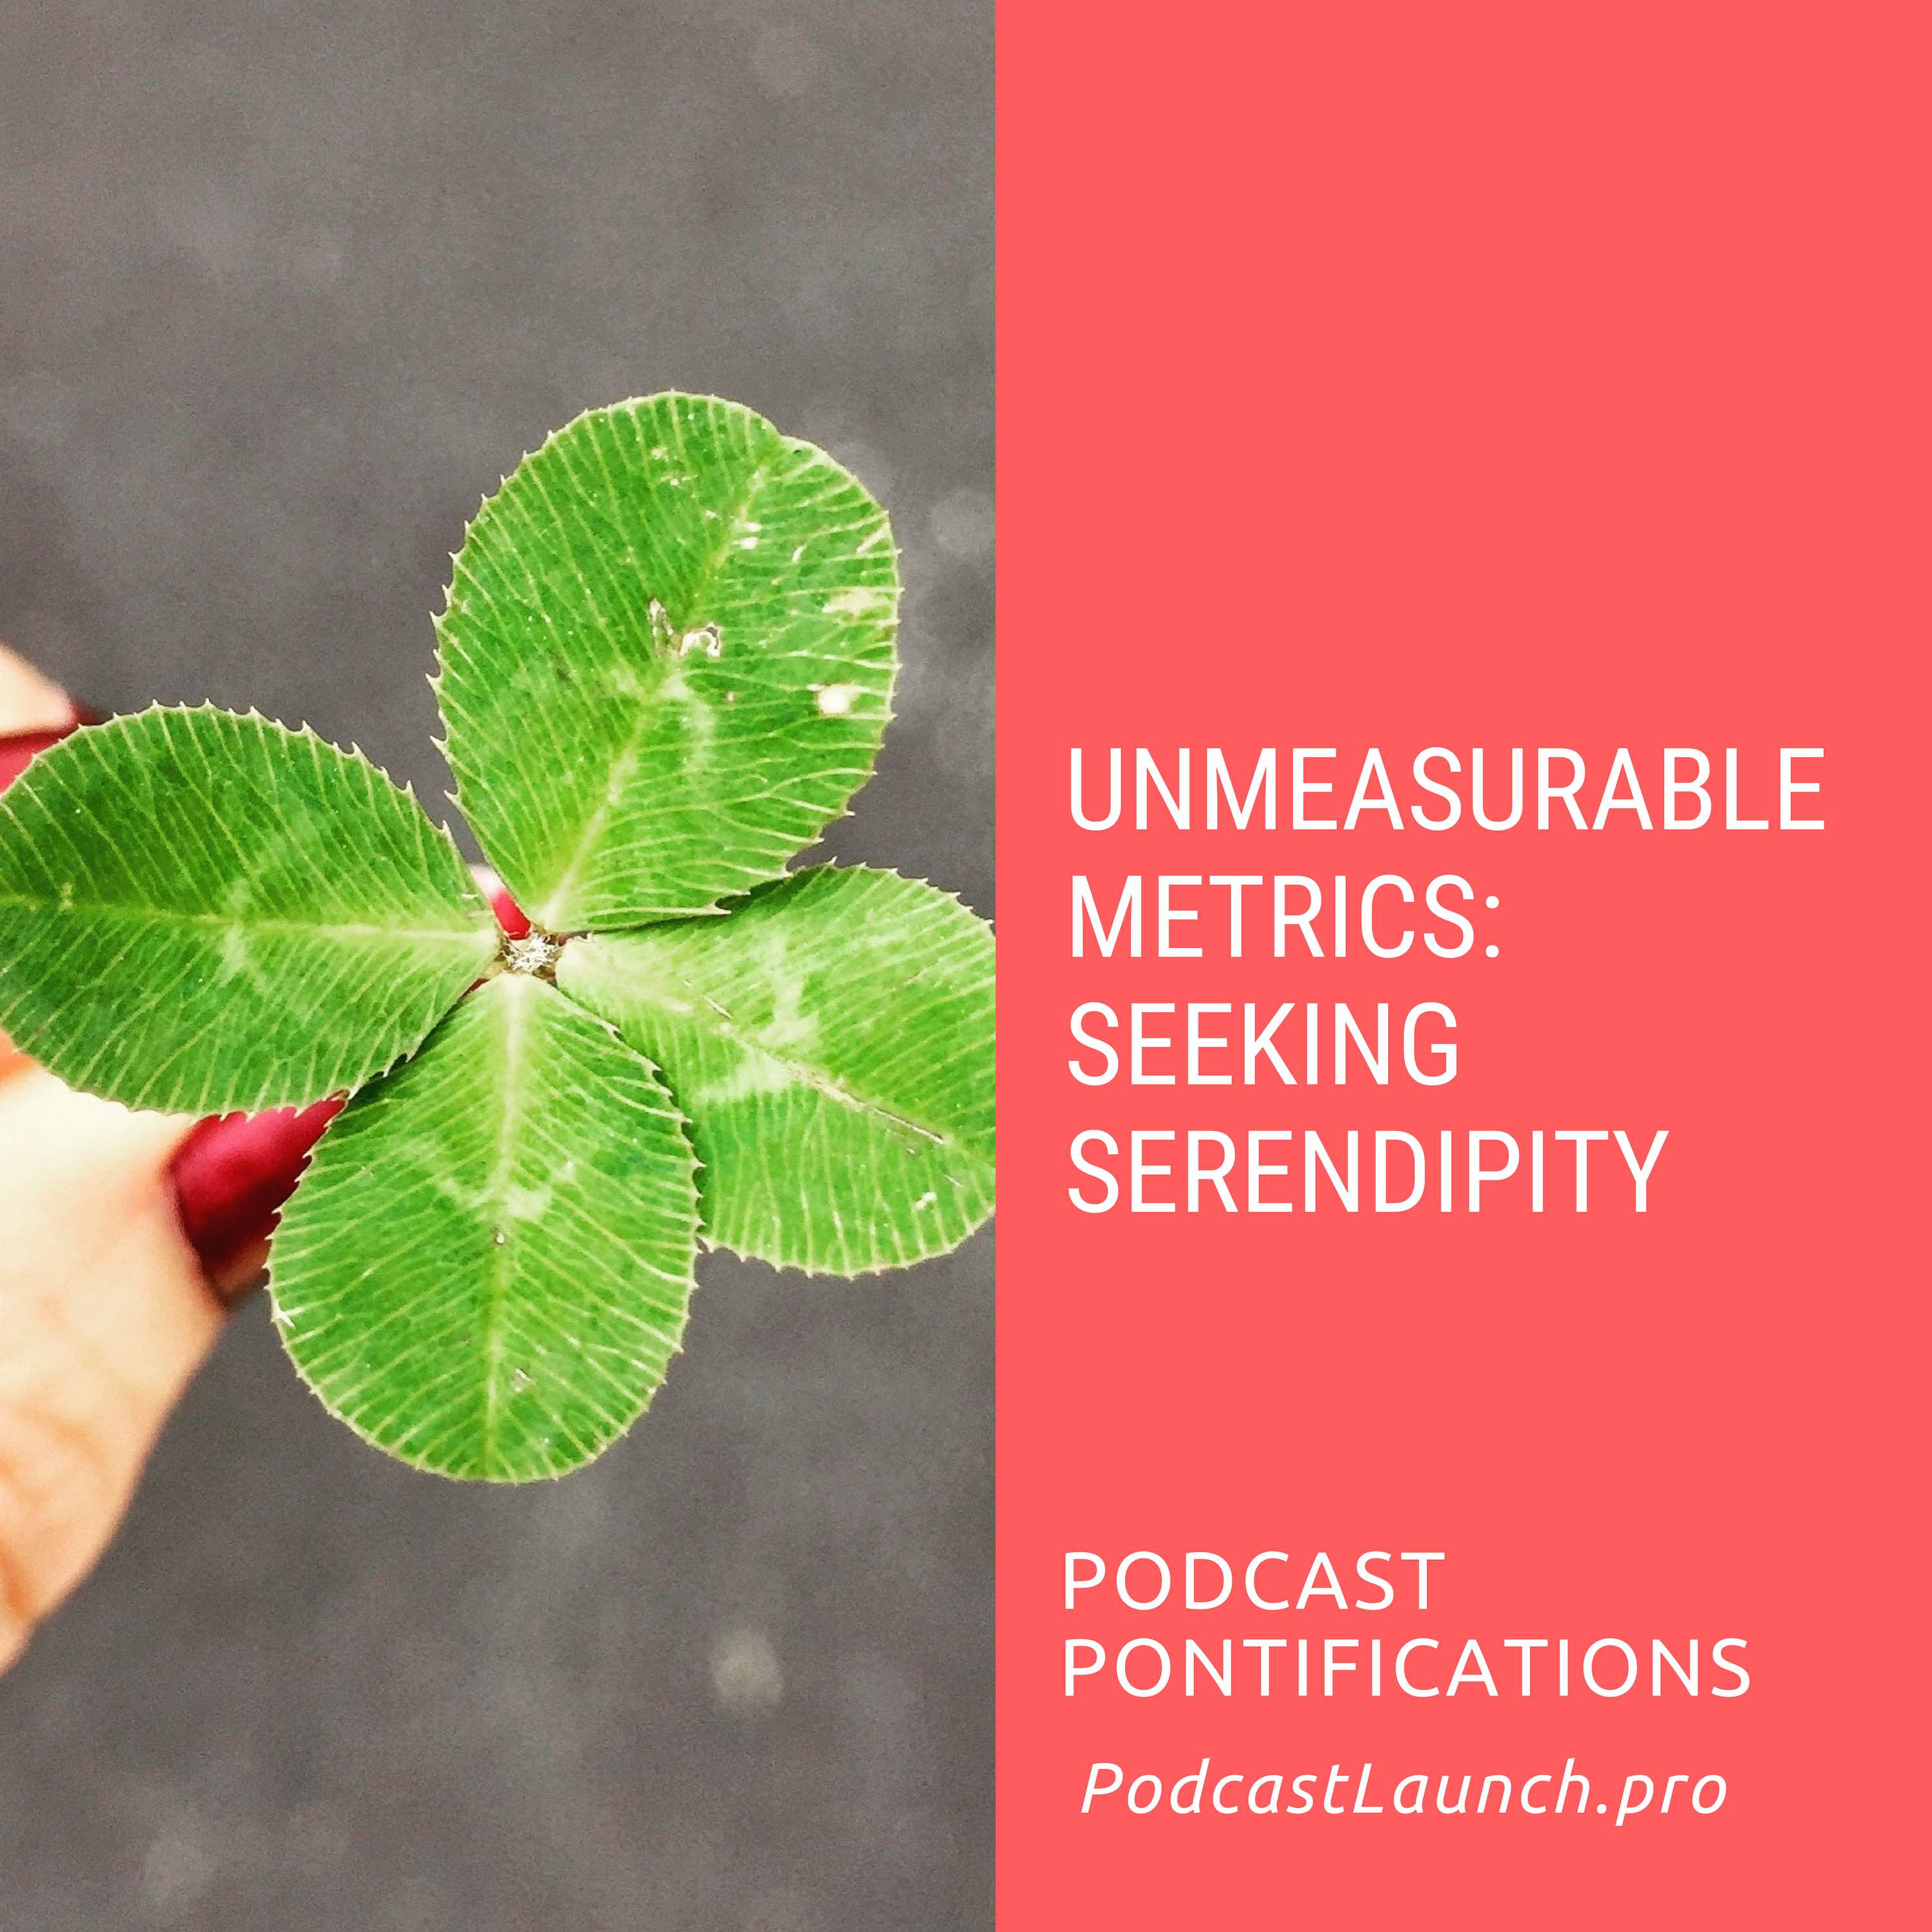 Unmeasurable Metrics: Seeking Serendipity by Evo Terra of Podcast Pontifications